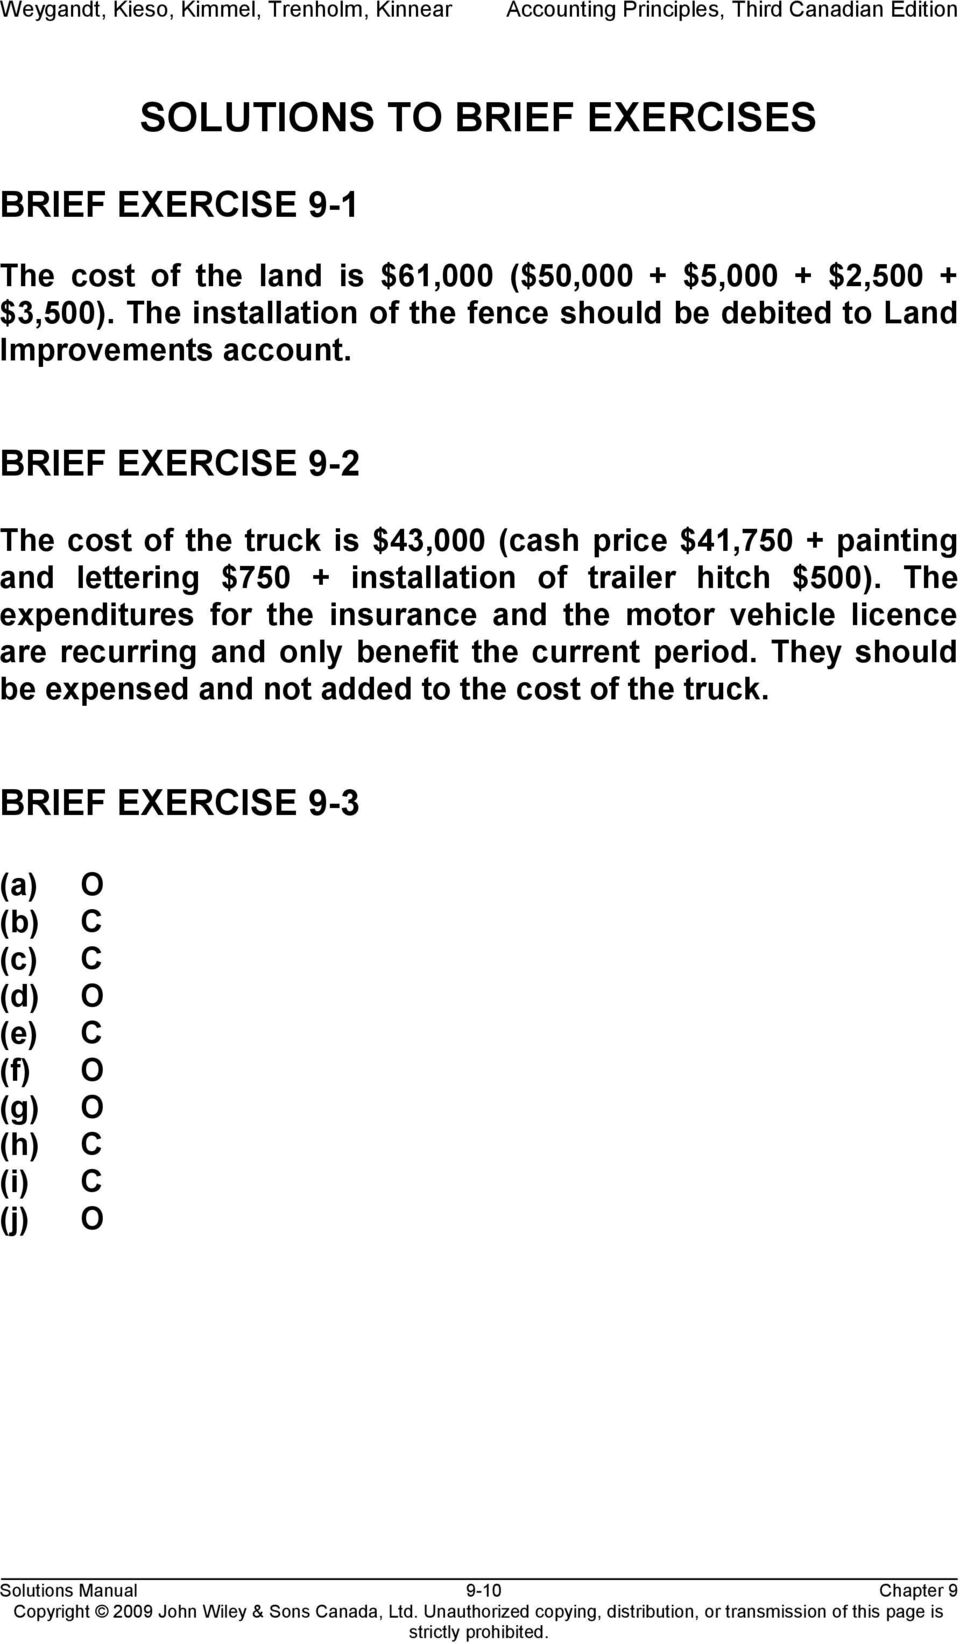 BRIEF EXERCISE 9-2 The cost of the truck is $43,000 (cash price $41,750 + painting and lettering $750 + installation of trailer hitch $500).